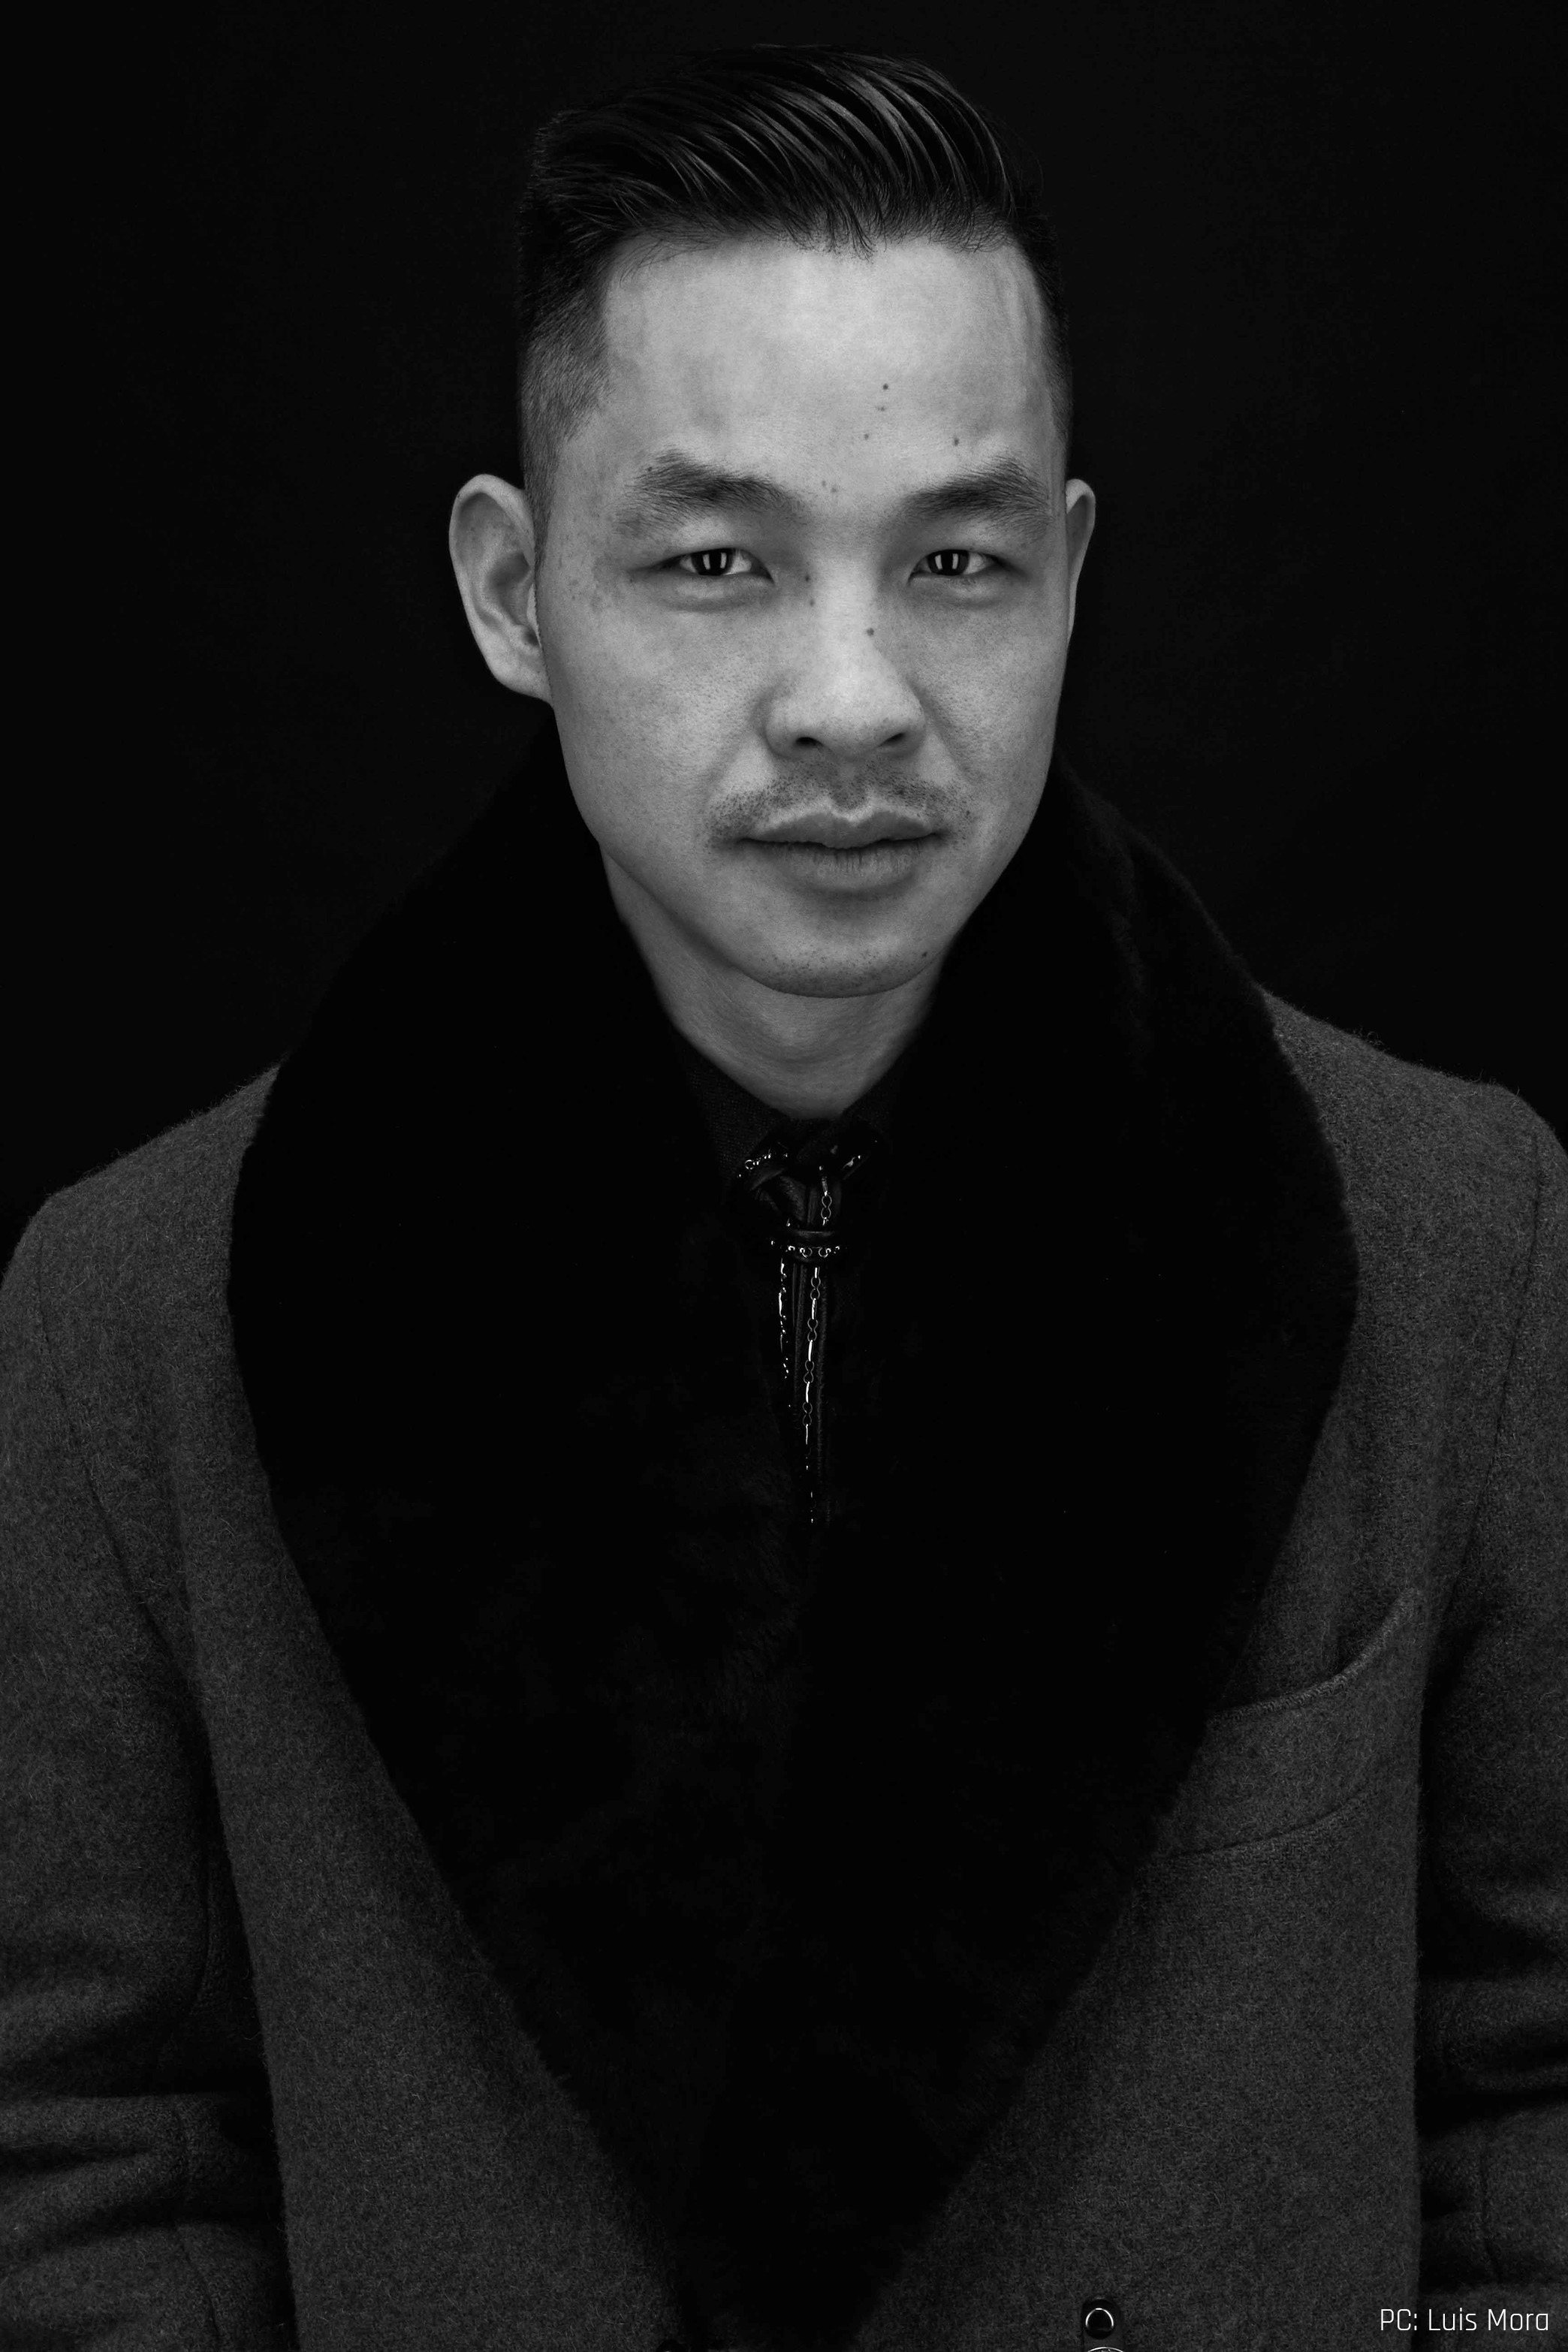 "Founder/Creative Director    Founder and Creative Director, Ken Chow graduated from the prestigious Fashion   Institute of Technology's (FIT) menswear program in New York. While at FIT, he interned with internationally-renowned designers Marc Jacobs, and Robert Geller and Alexandre Plokhov – the team behind the NY cult label Cloak(now defunct). During his time in New York, he also won the opportunity to show his modern take on menswear through GenArt's high-profile International Design Competition.  Upon Chow's return to Toronto in the early 2000's, he felt the excitement happening in the women's accessories market and foresaw the same excitement happening in the men's market – pertaining to bags, or the coined term ""manbags"". Chow devoted his focus on developing and perfecting his craft; working with specialized Canadian artisans from the handbag industry.  Entering the men's market with a reinterpretation of an old classic – the waxed cotton and leather carry-all, the Krane Bag caught the attention of international media and buyers. Men soon elected his utilitarian manbags as a fashionable necessity; paving the way for the introduction of the Krane Man menswear line.  Chow was born in China surrounded by pencils, paint brushes, and pins and needles – tools that would foreshadow a later stage in Chow's life.  Once in Canada, Chow honed his gift of drawing; entering Remembrance Day/Veterans' Day poster design contests and sparking an interest in a militarist aesthetic, a recurring theme which continues today. His love for music, art, architecture, and street-culture add the modern influences to the collections.  A lover of all things Asian, Chow followed through with this in deciding on the name, Krane, for his label: a combination of what the crane bird represents in Asian symbolism; Daniel-san's winning karate style in the Karate Kid; and the industrial crane (which is the later western influence).  Chow currently resides in Toronto, Canada, a city rich and diverse in music, art, architecture, youth and street culture."